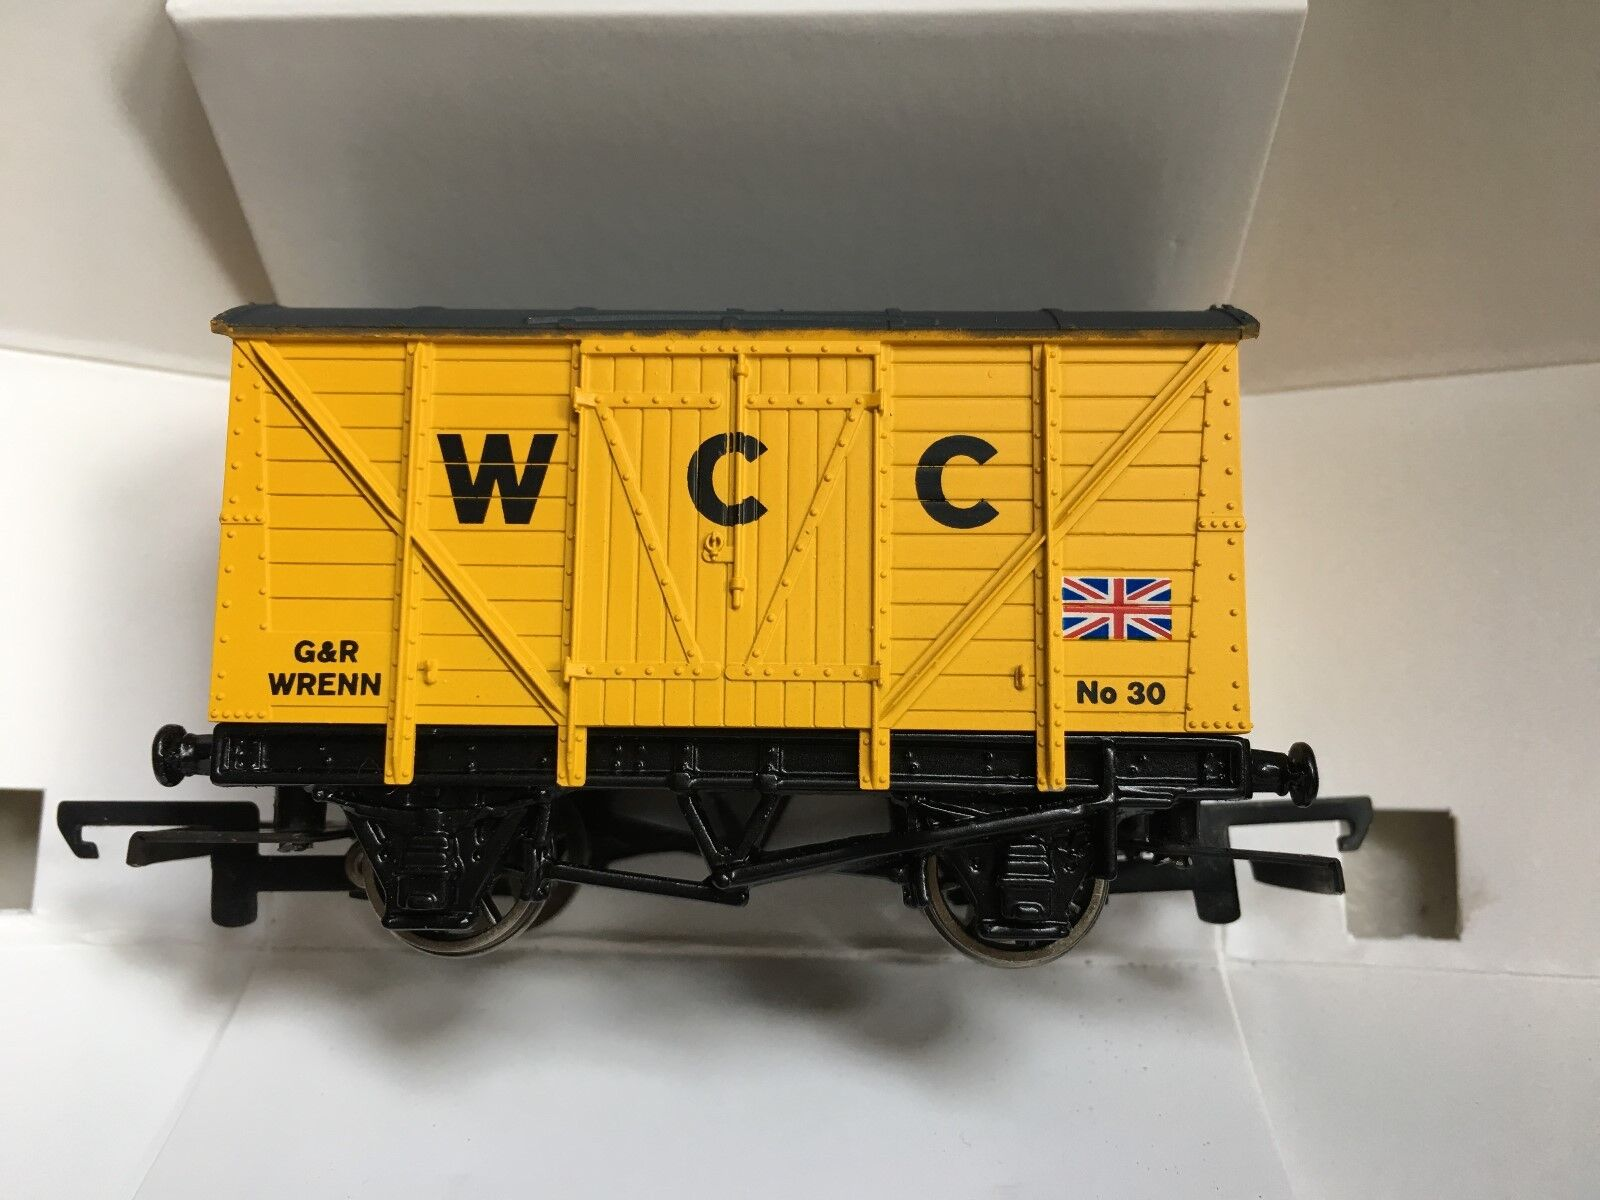 WRENN W5305 YELLOW WCC 2012 VENT Wagon - Brand New